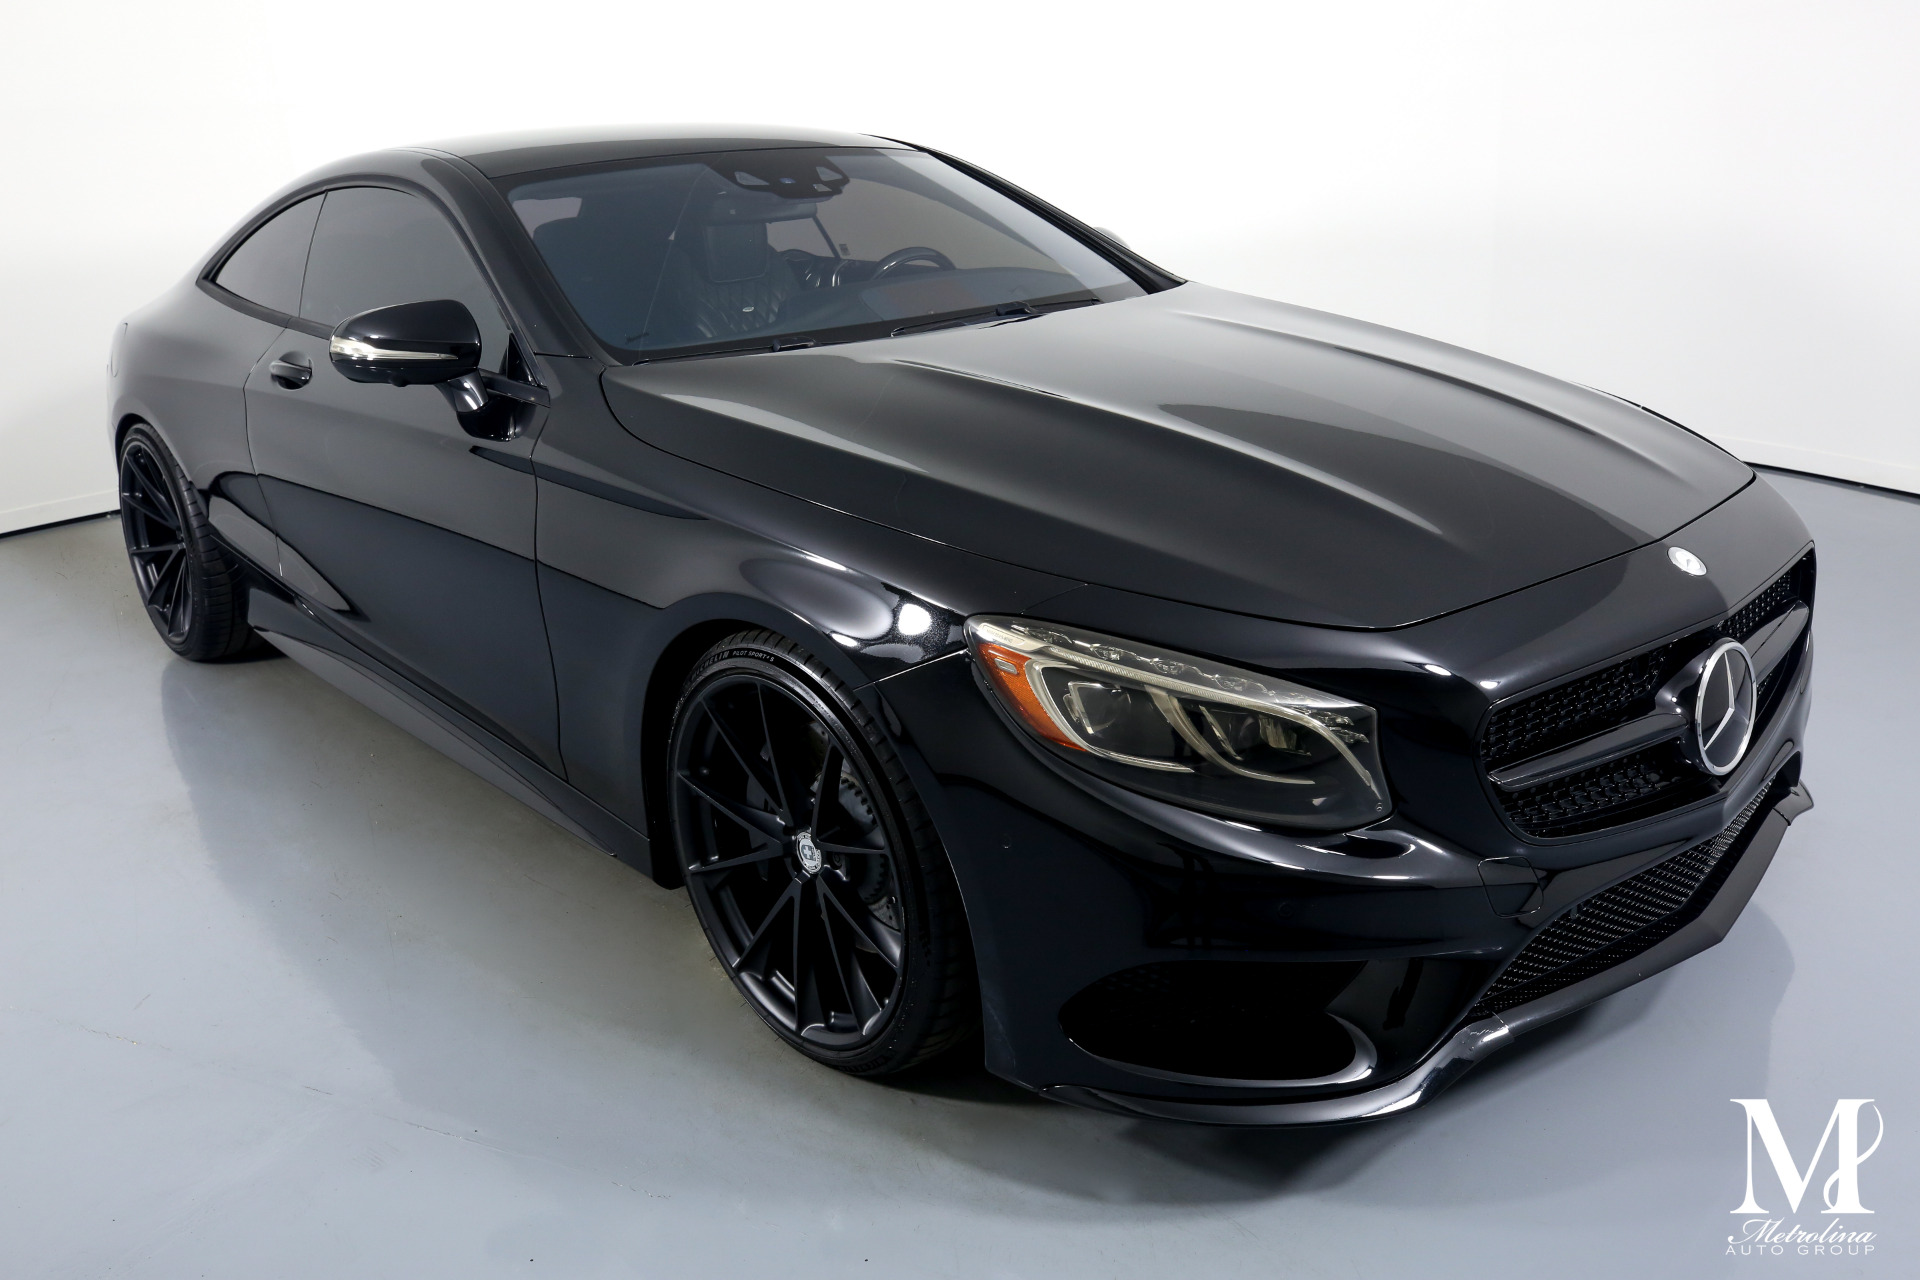 Used 2016 Mercedes-Benz S-Class S 550 4MATIC for sale $67,456 at Metrolina Auto Group in Charlotte NC 28217 - 2